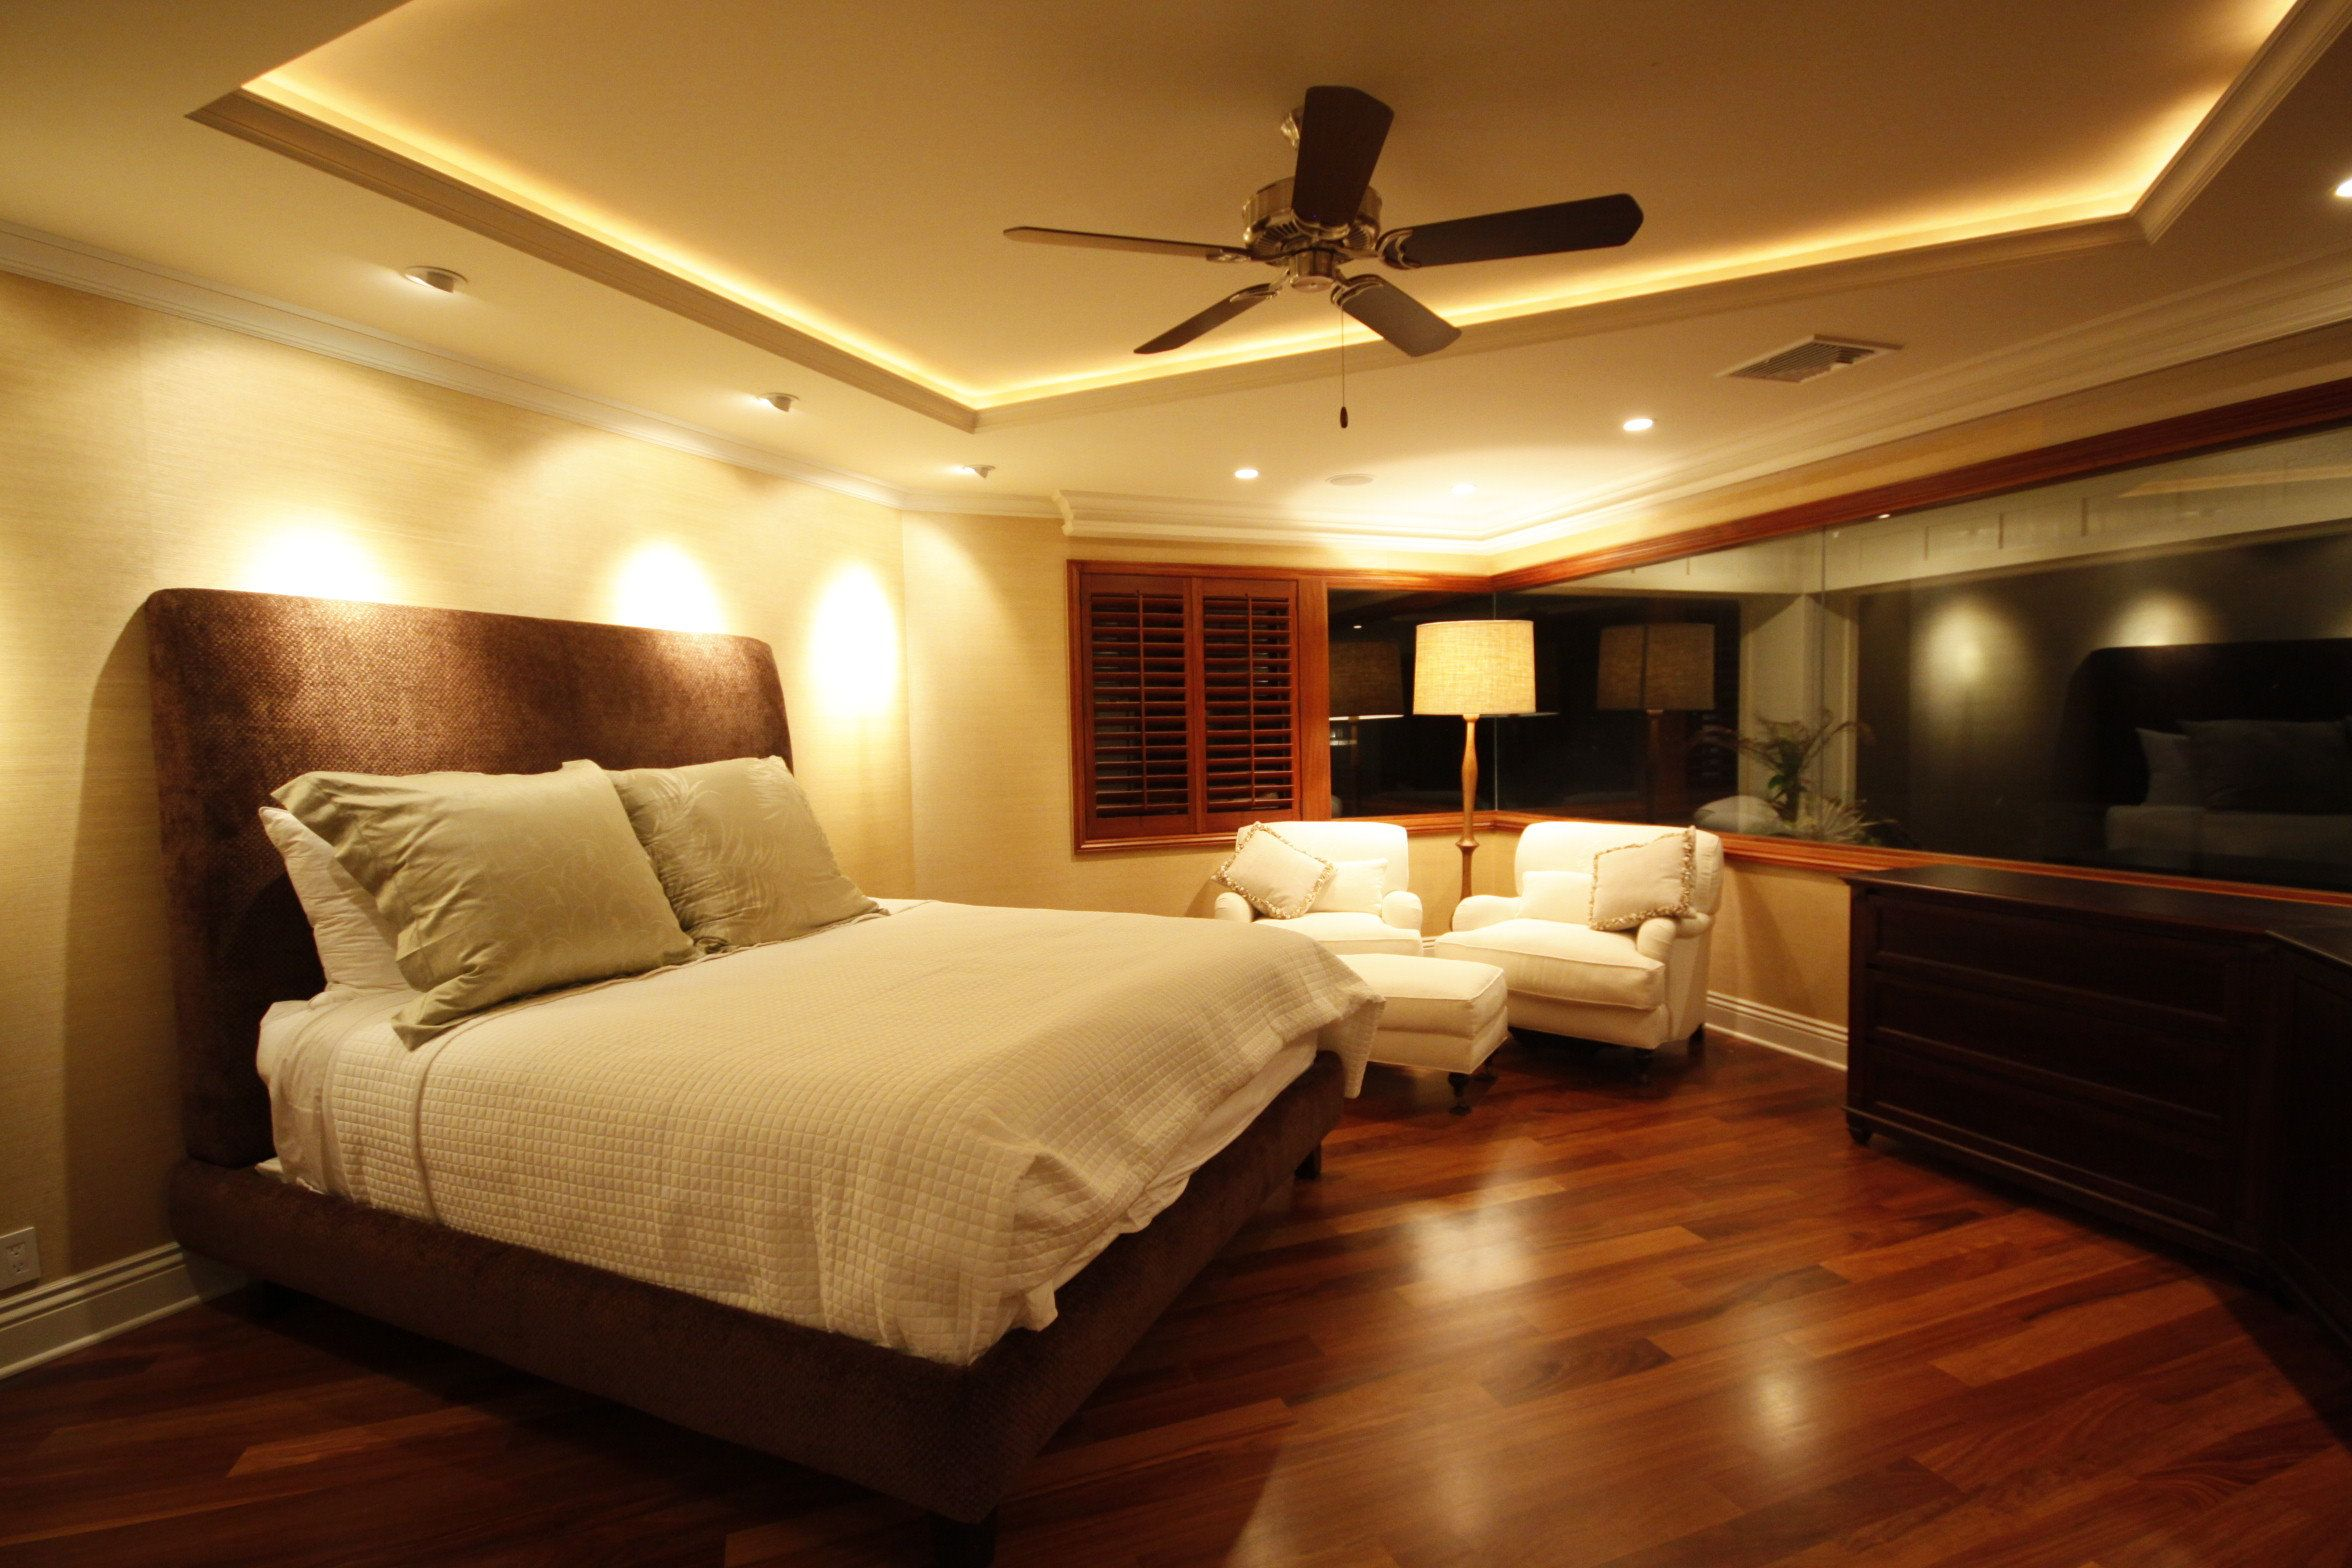 Appealing master bedroom modern decor with wooden floors for Bedroom lights decor